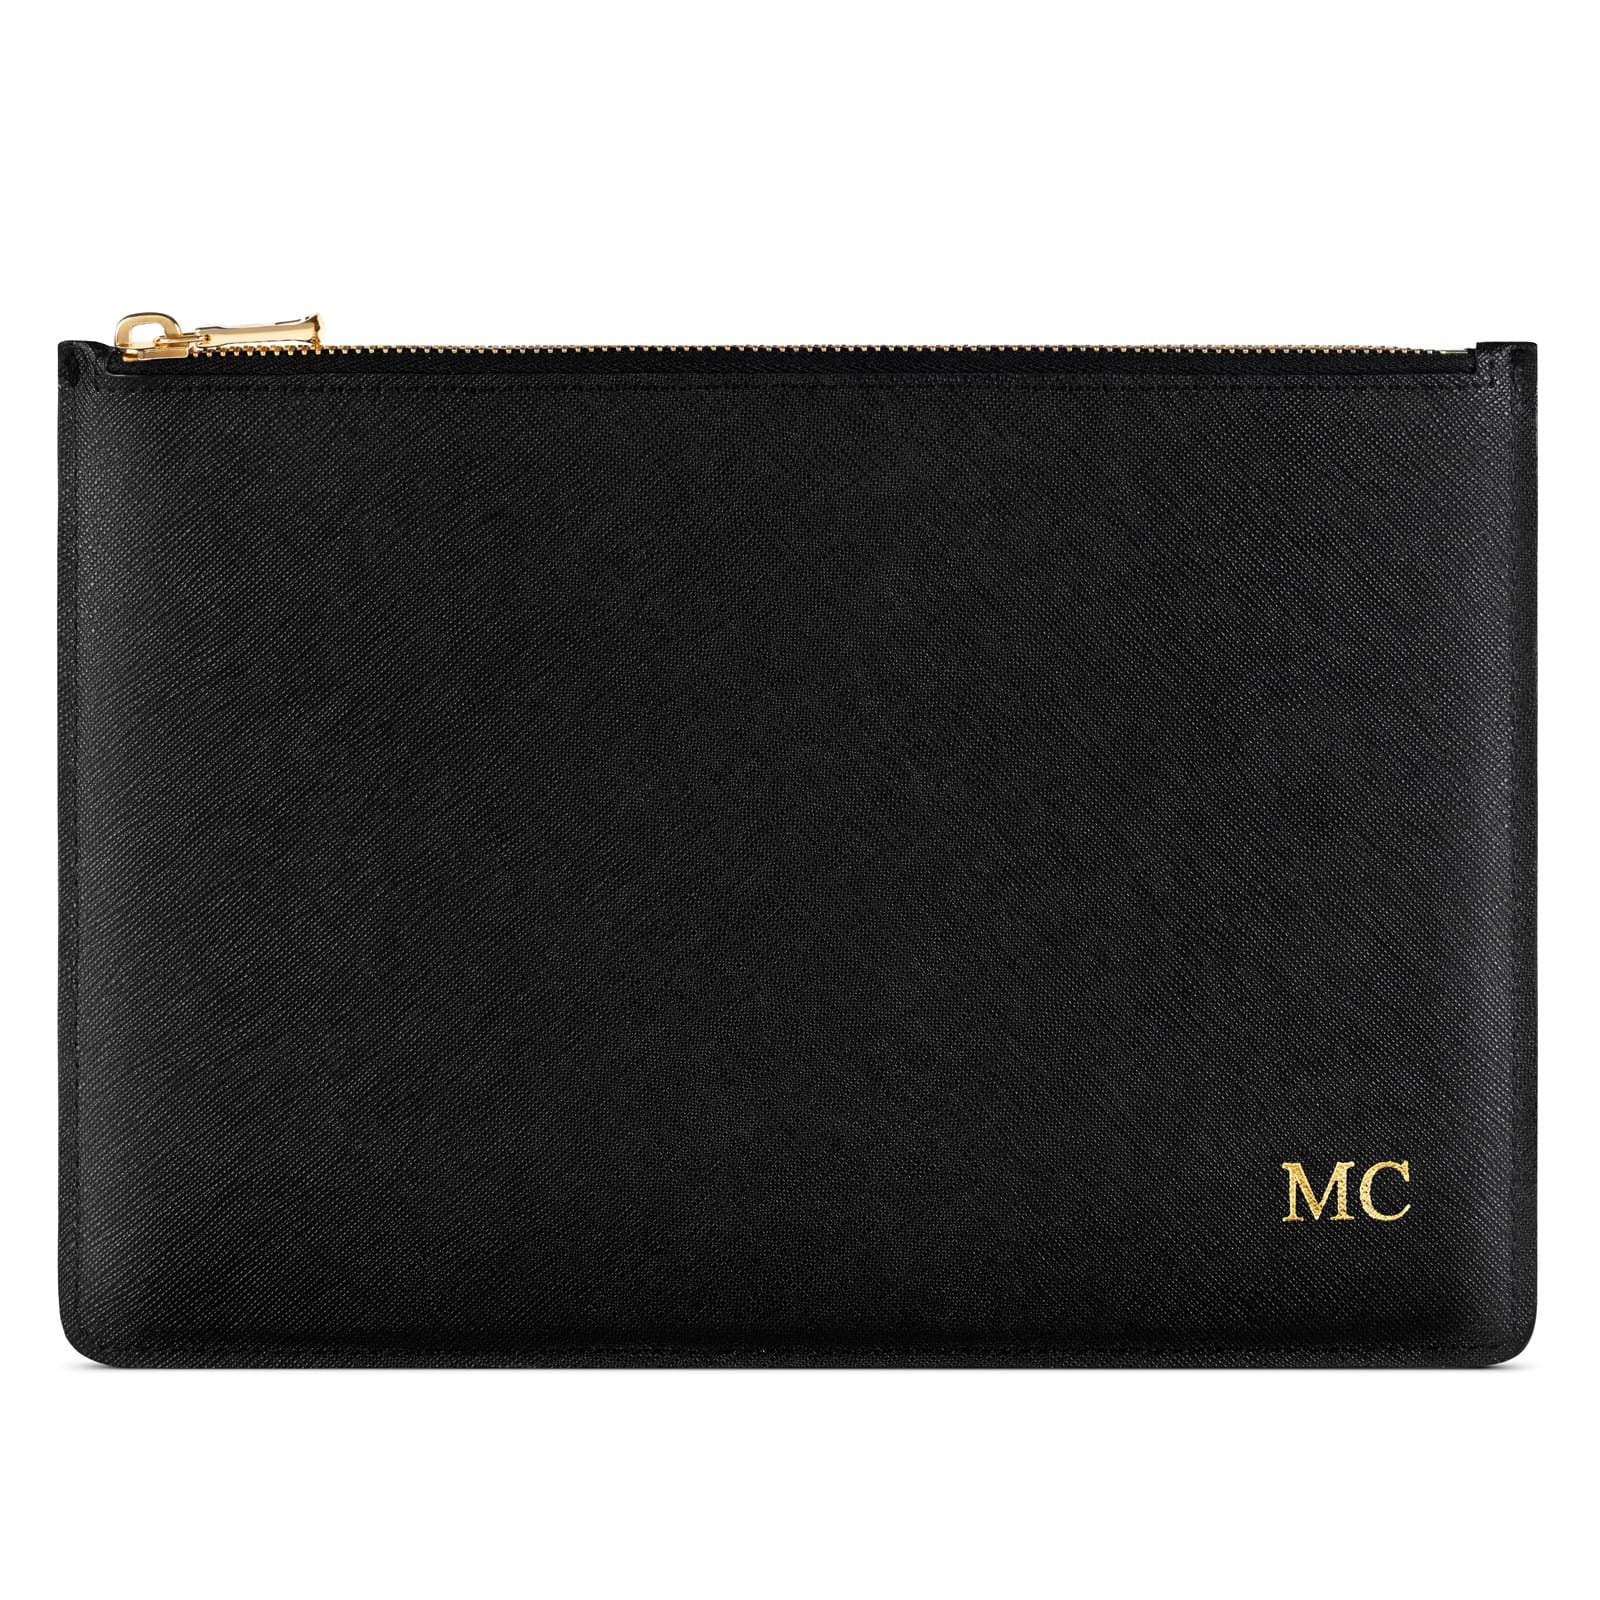 Personalised Black Saffiano Leather Pouch